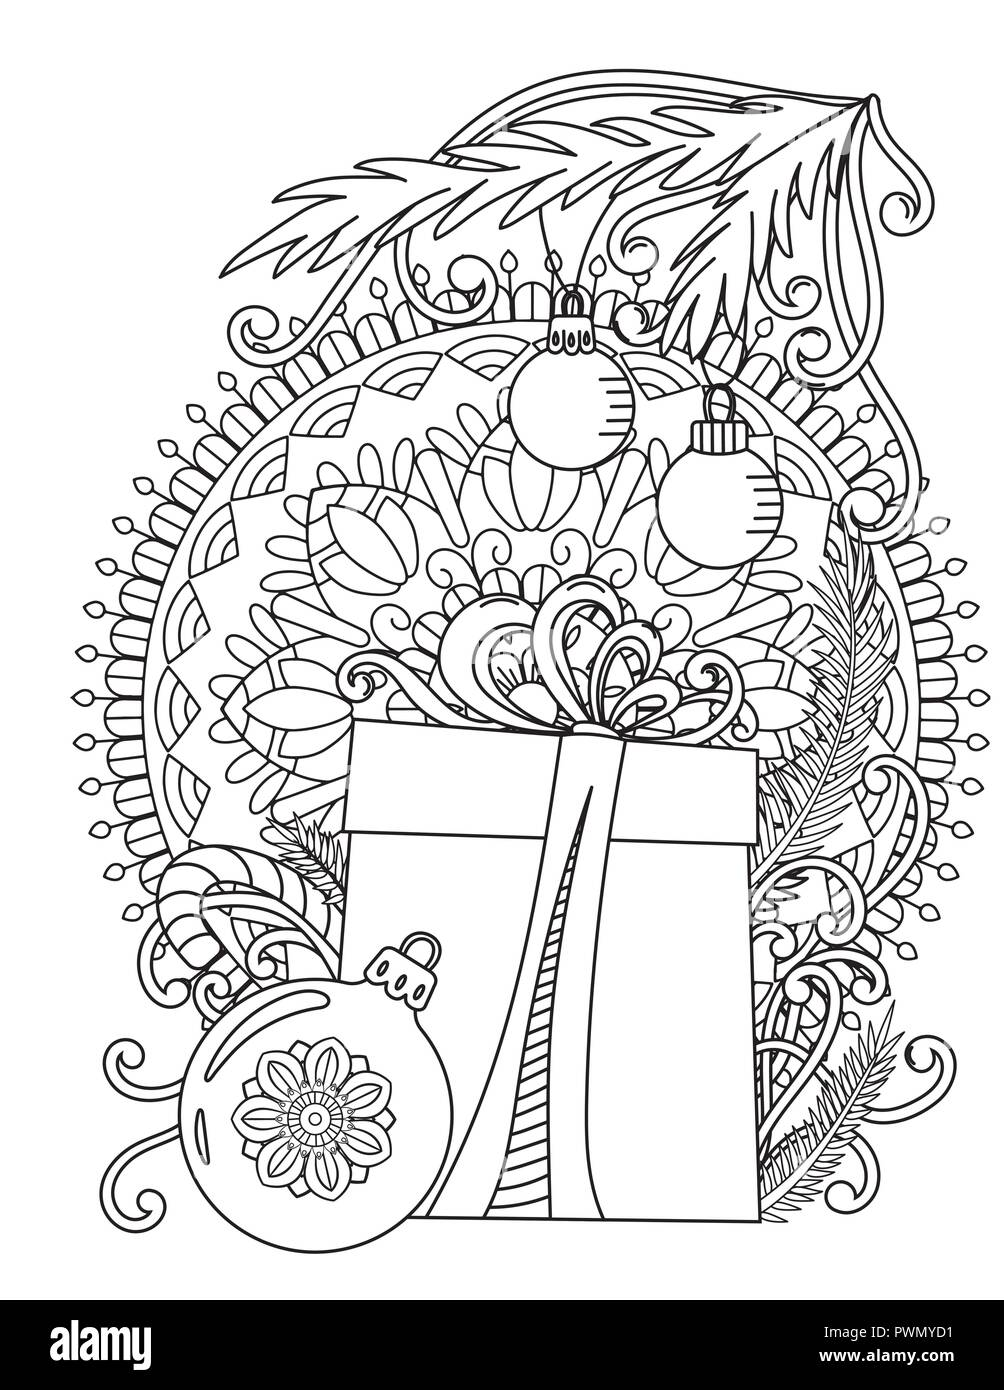 Coloriage Mandala De Noel Livre De Coloriage Adultes Holiday Gift